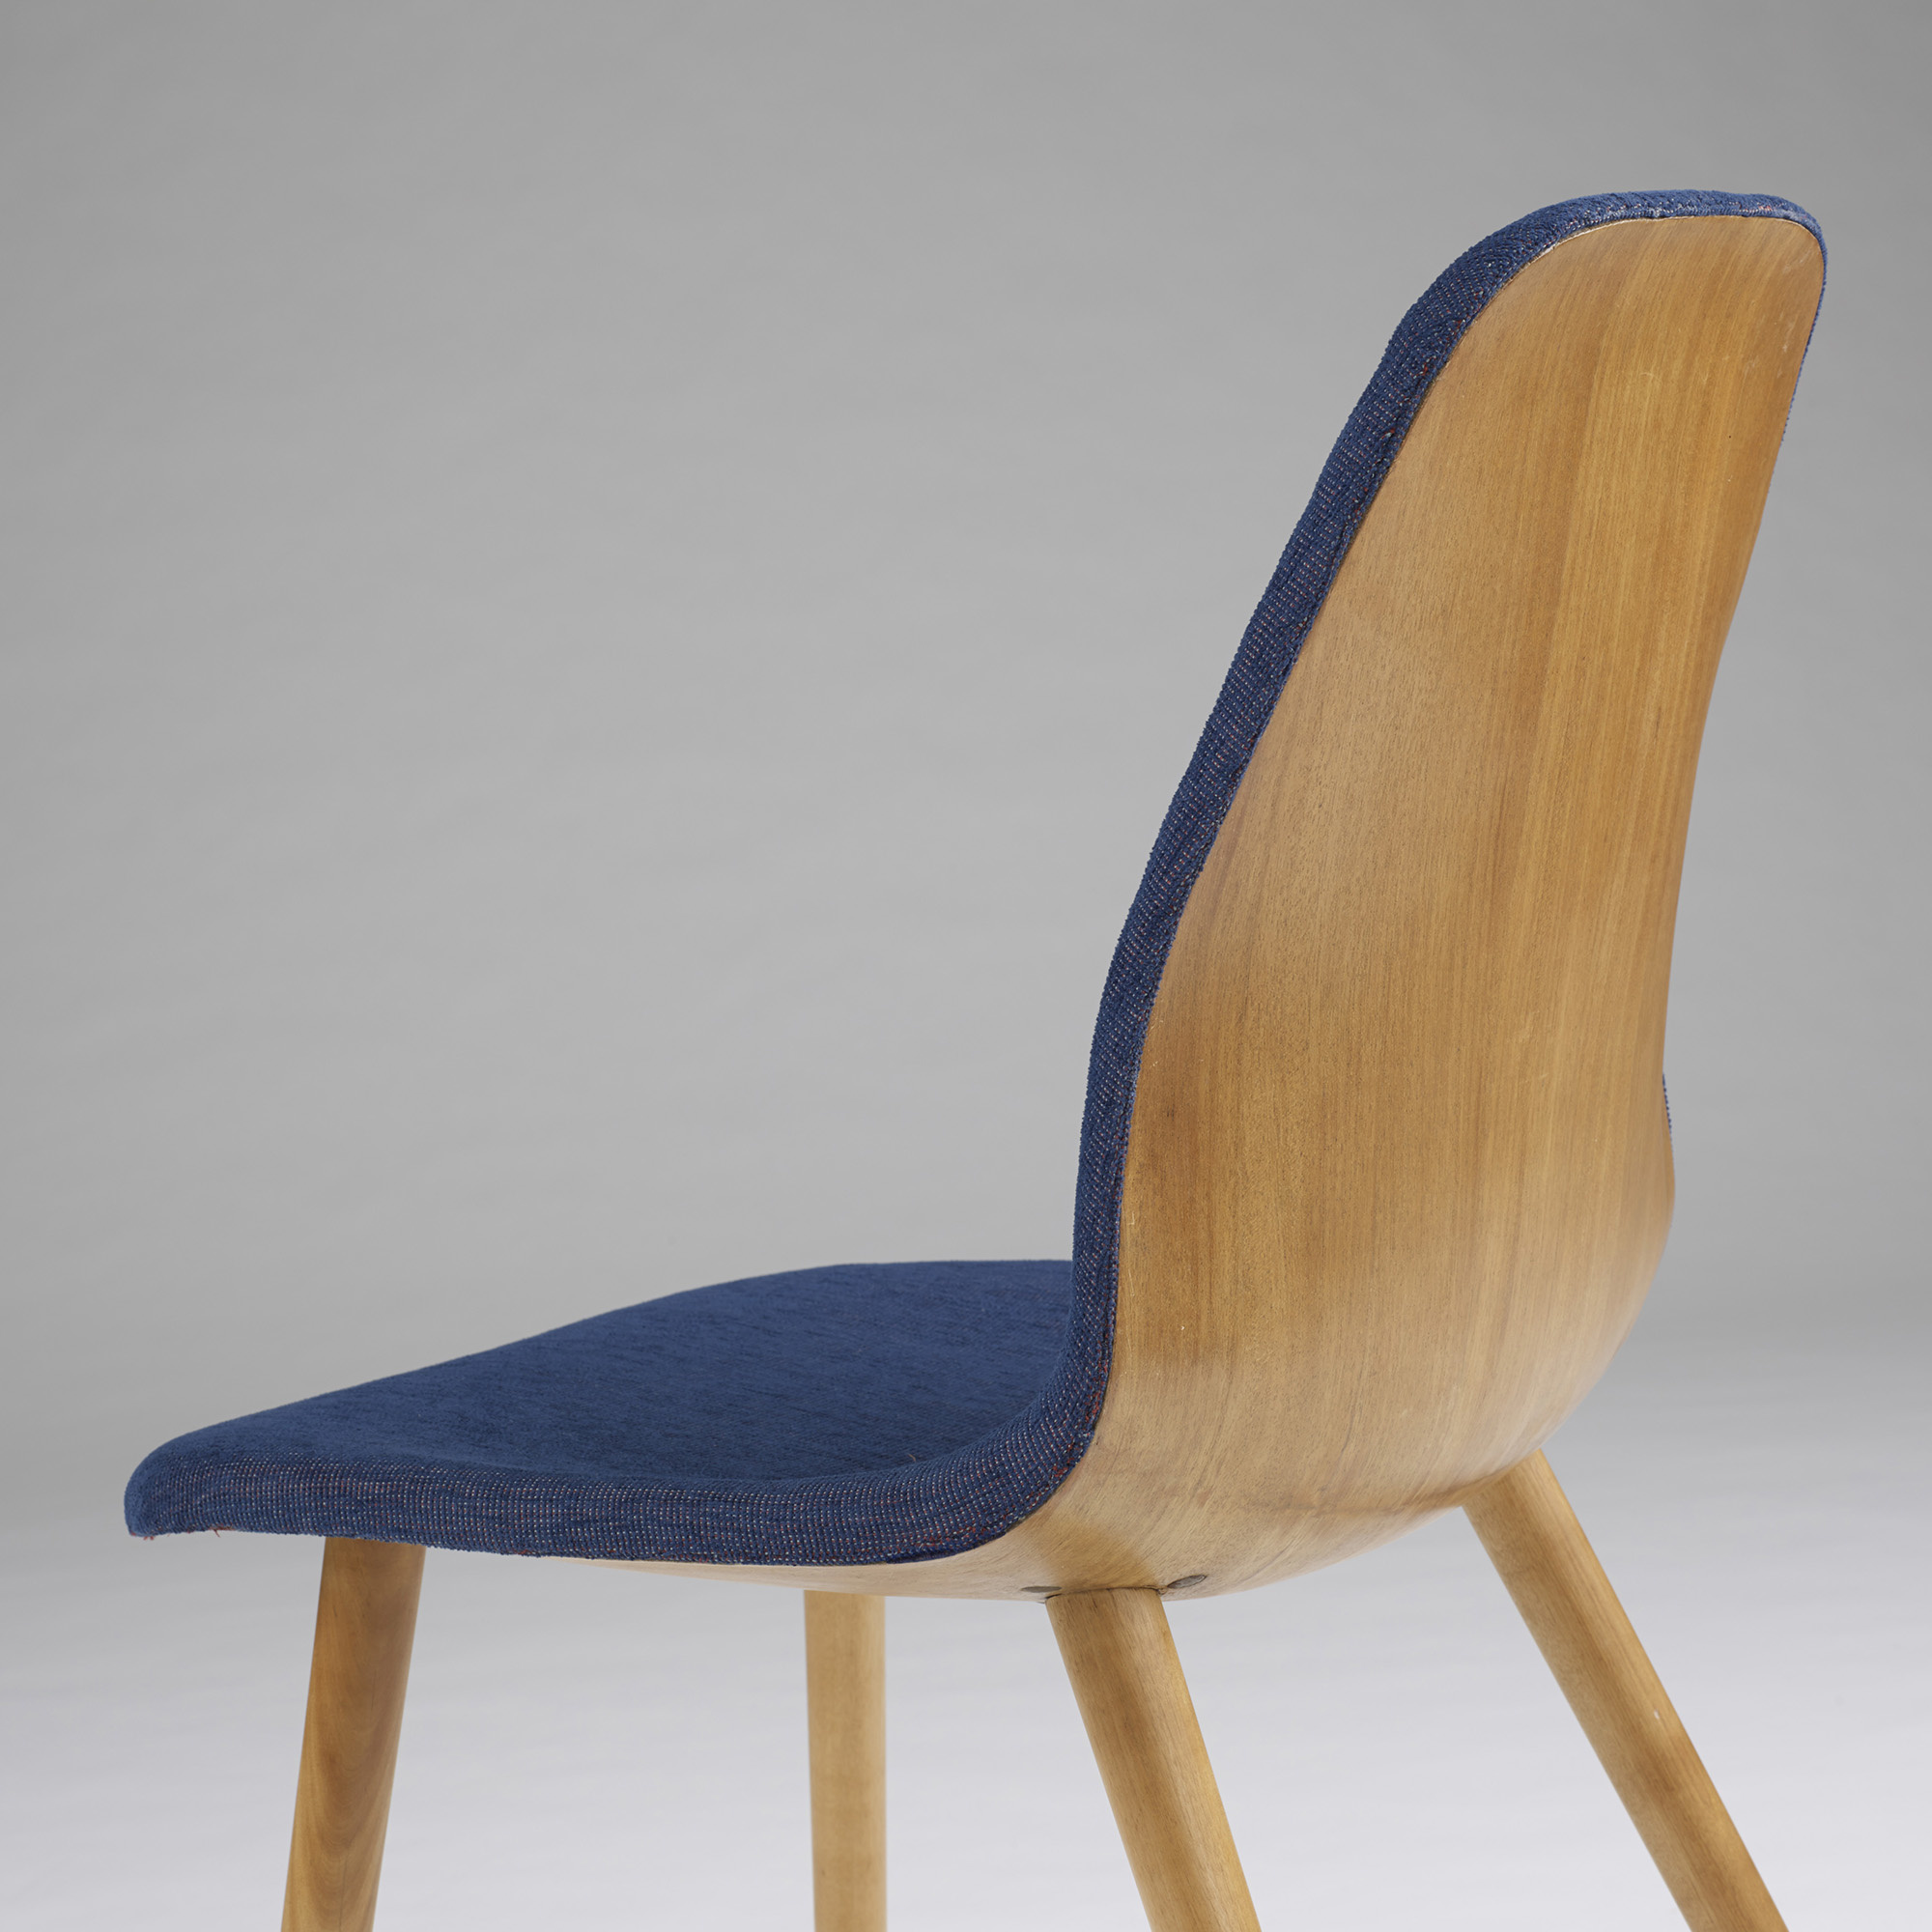 131 Charles Eames And Eero Saarinen Chair From The Museum Of Modern Art Organic